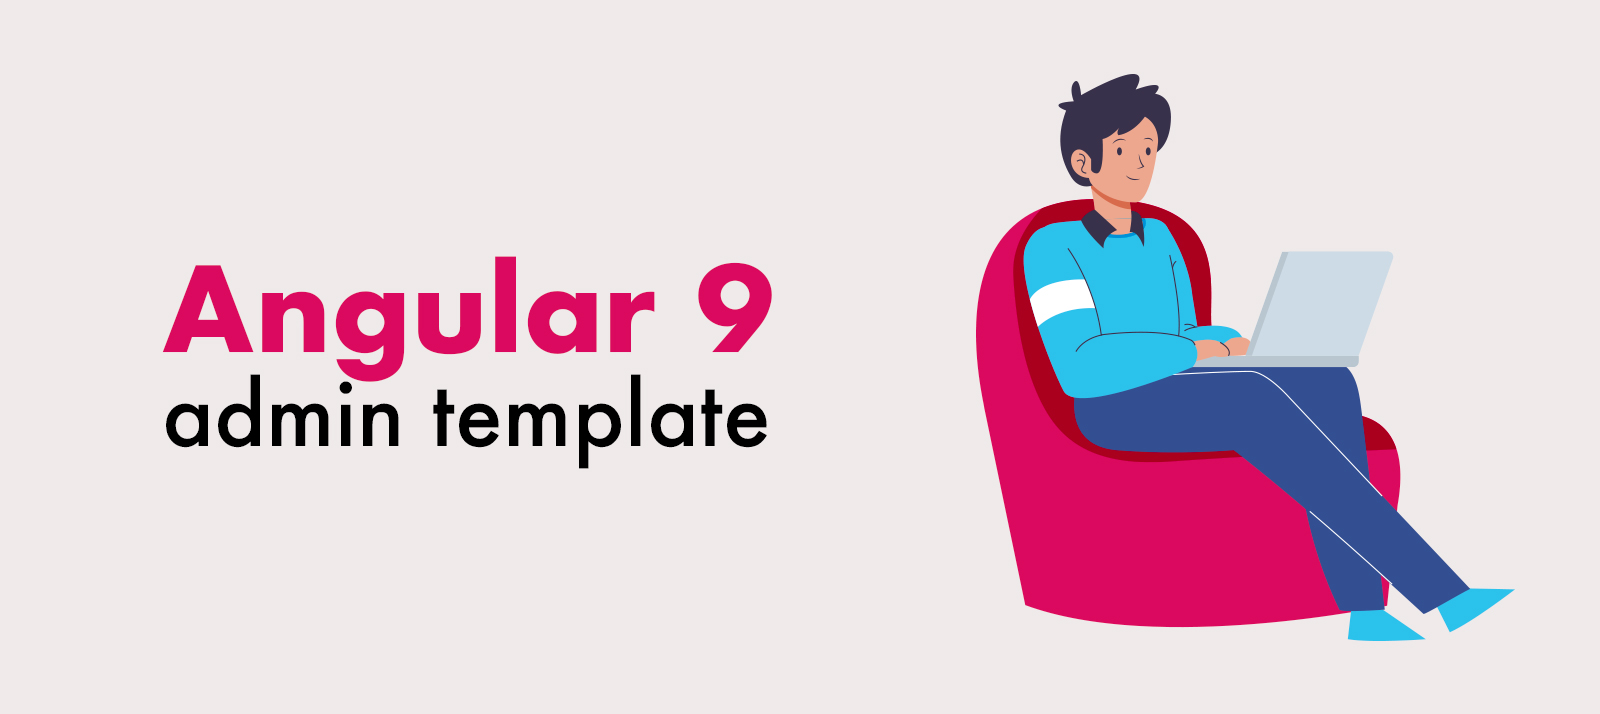 30+ Angular 9 Dashboard Templates For Your Next Web App Development Project